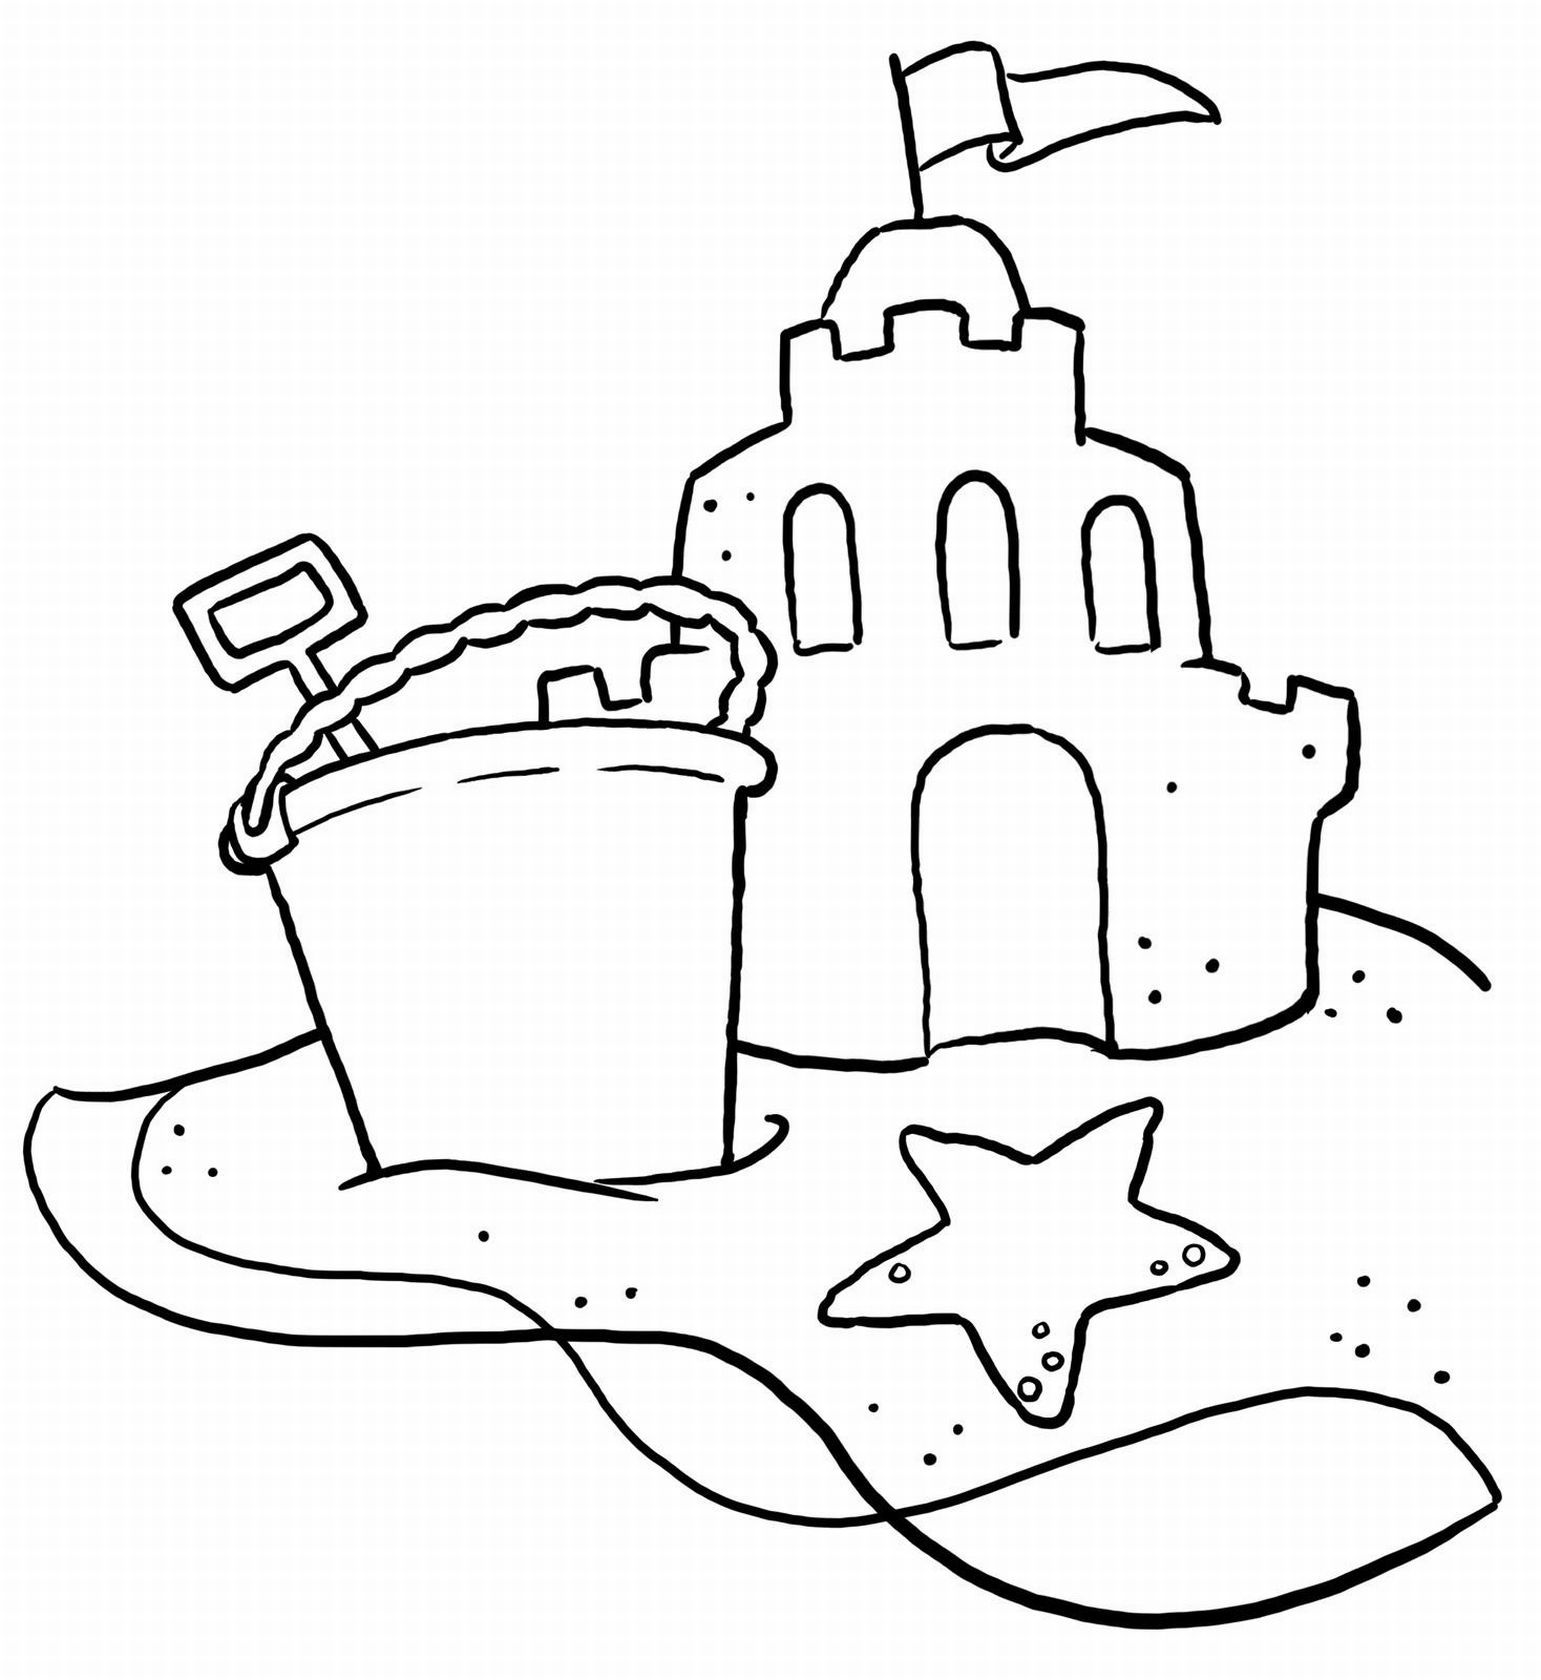 1541x1680 Beach Coloring Pages 20 Free Printable Sheets To Color